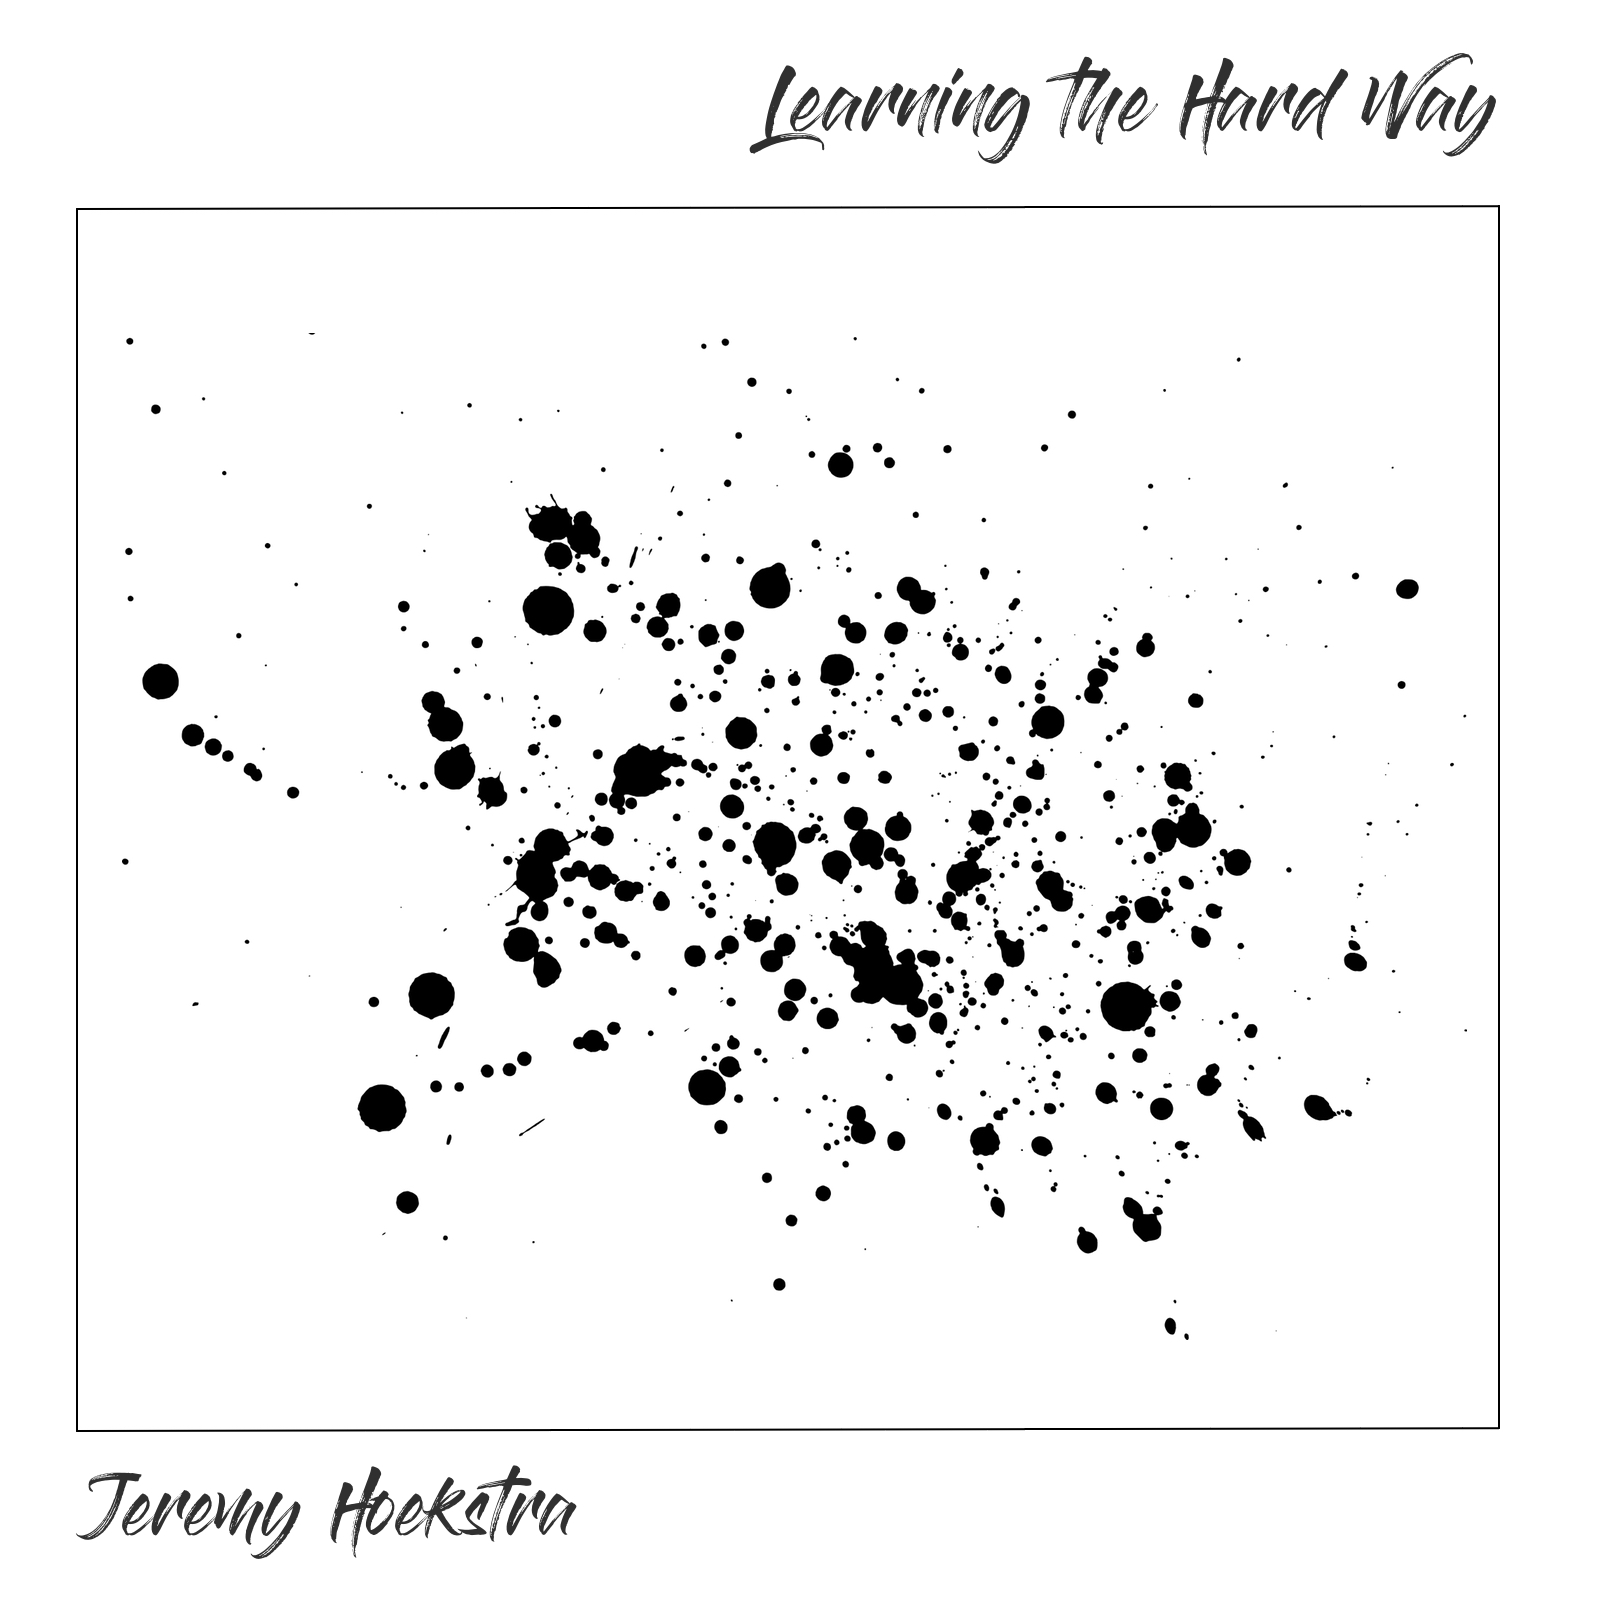 Learning the Hard Way - Cover Art